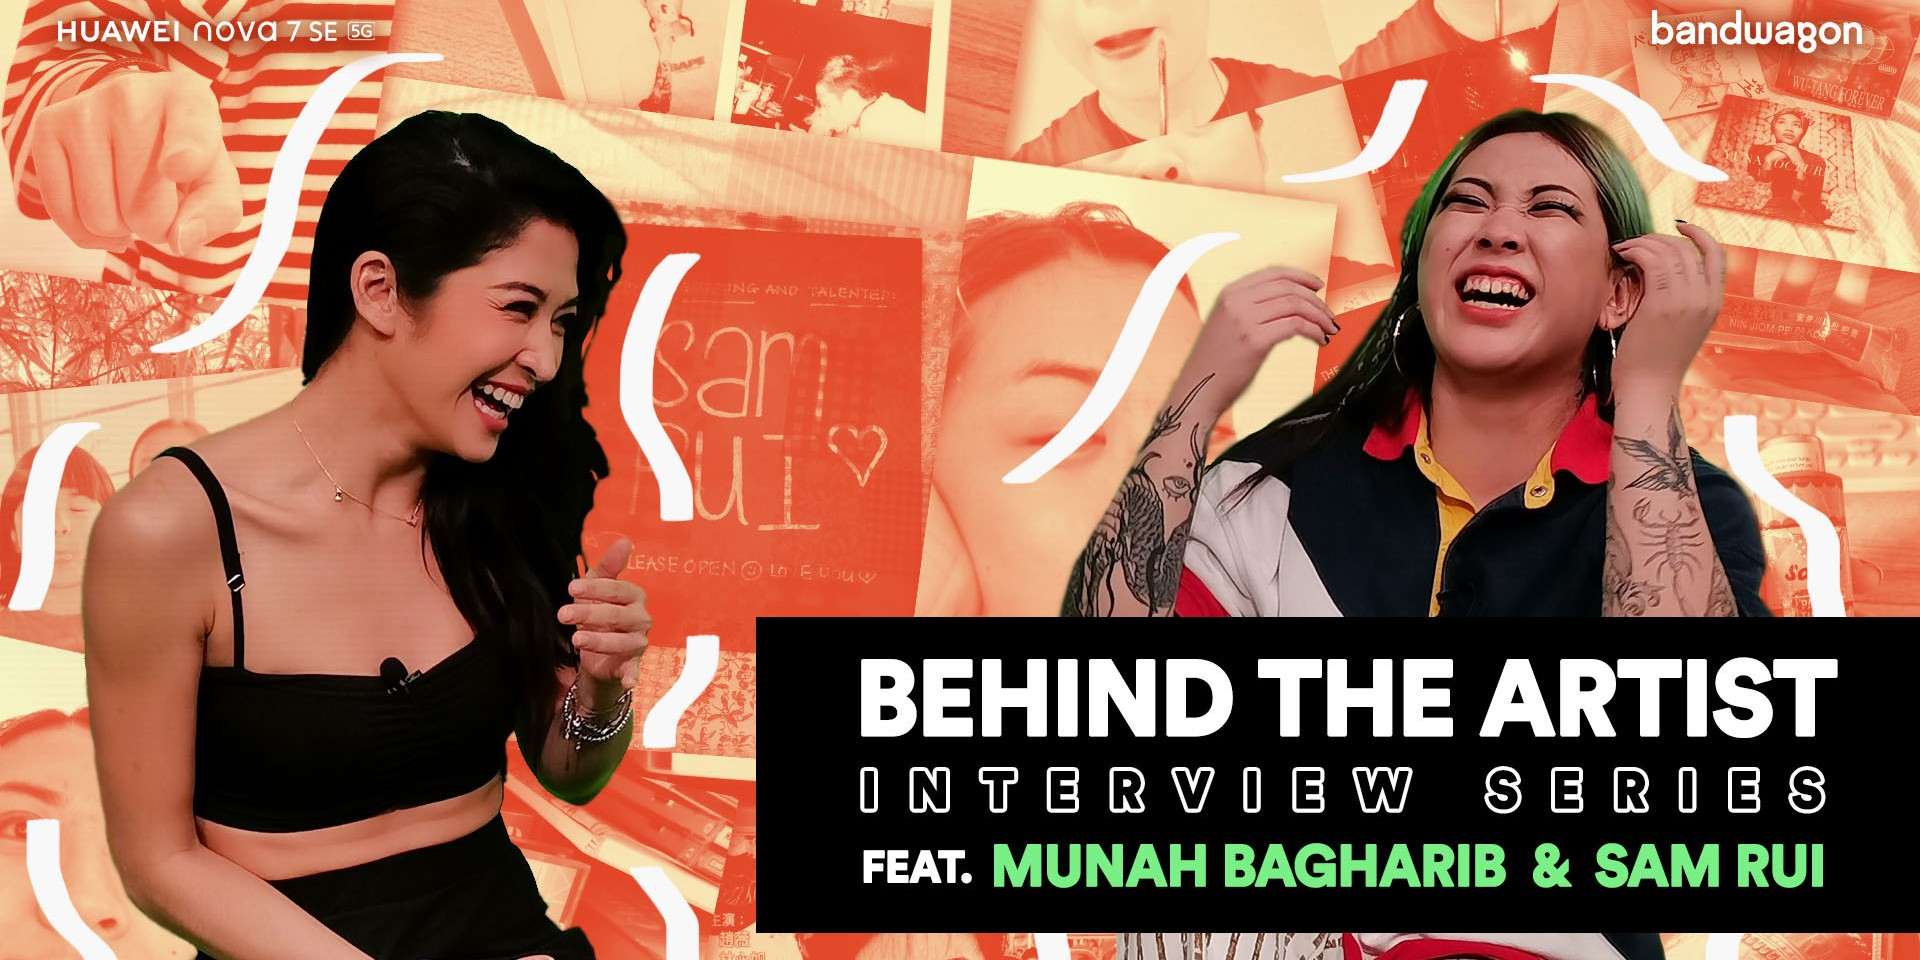 """Sam Rui talks childhood memories, relationships, and her latest EP, In Between, in """"Behind The Artist"""" interview series - watch"""